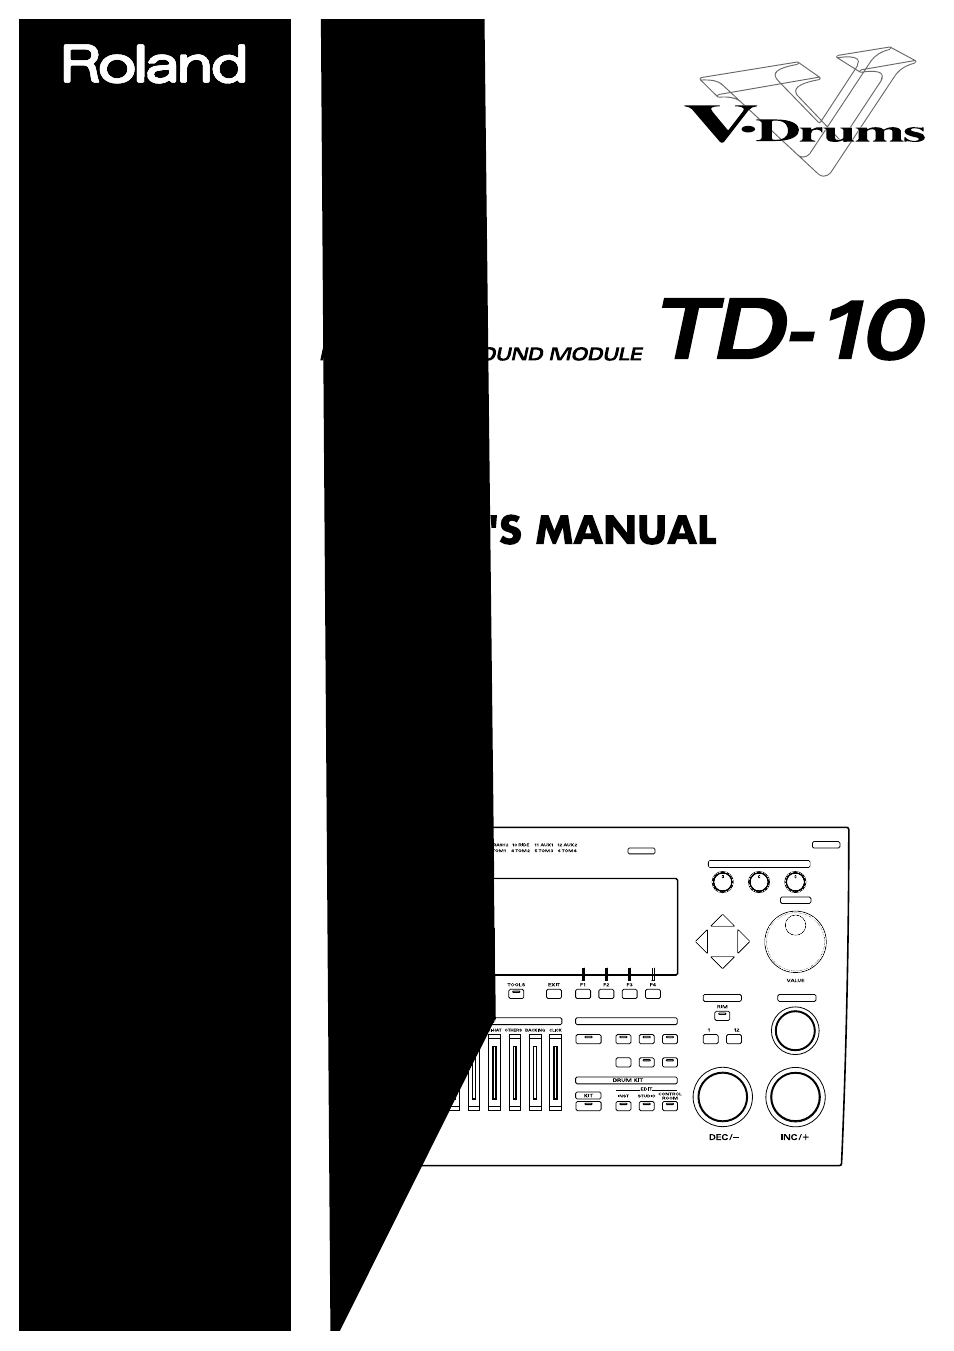 roland td 10 user manual 182 pages rh manualsdir com roland td-10 expanded tdw-1 manual roland td-10 module manual